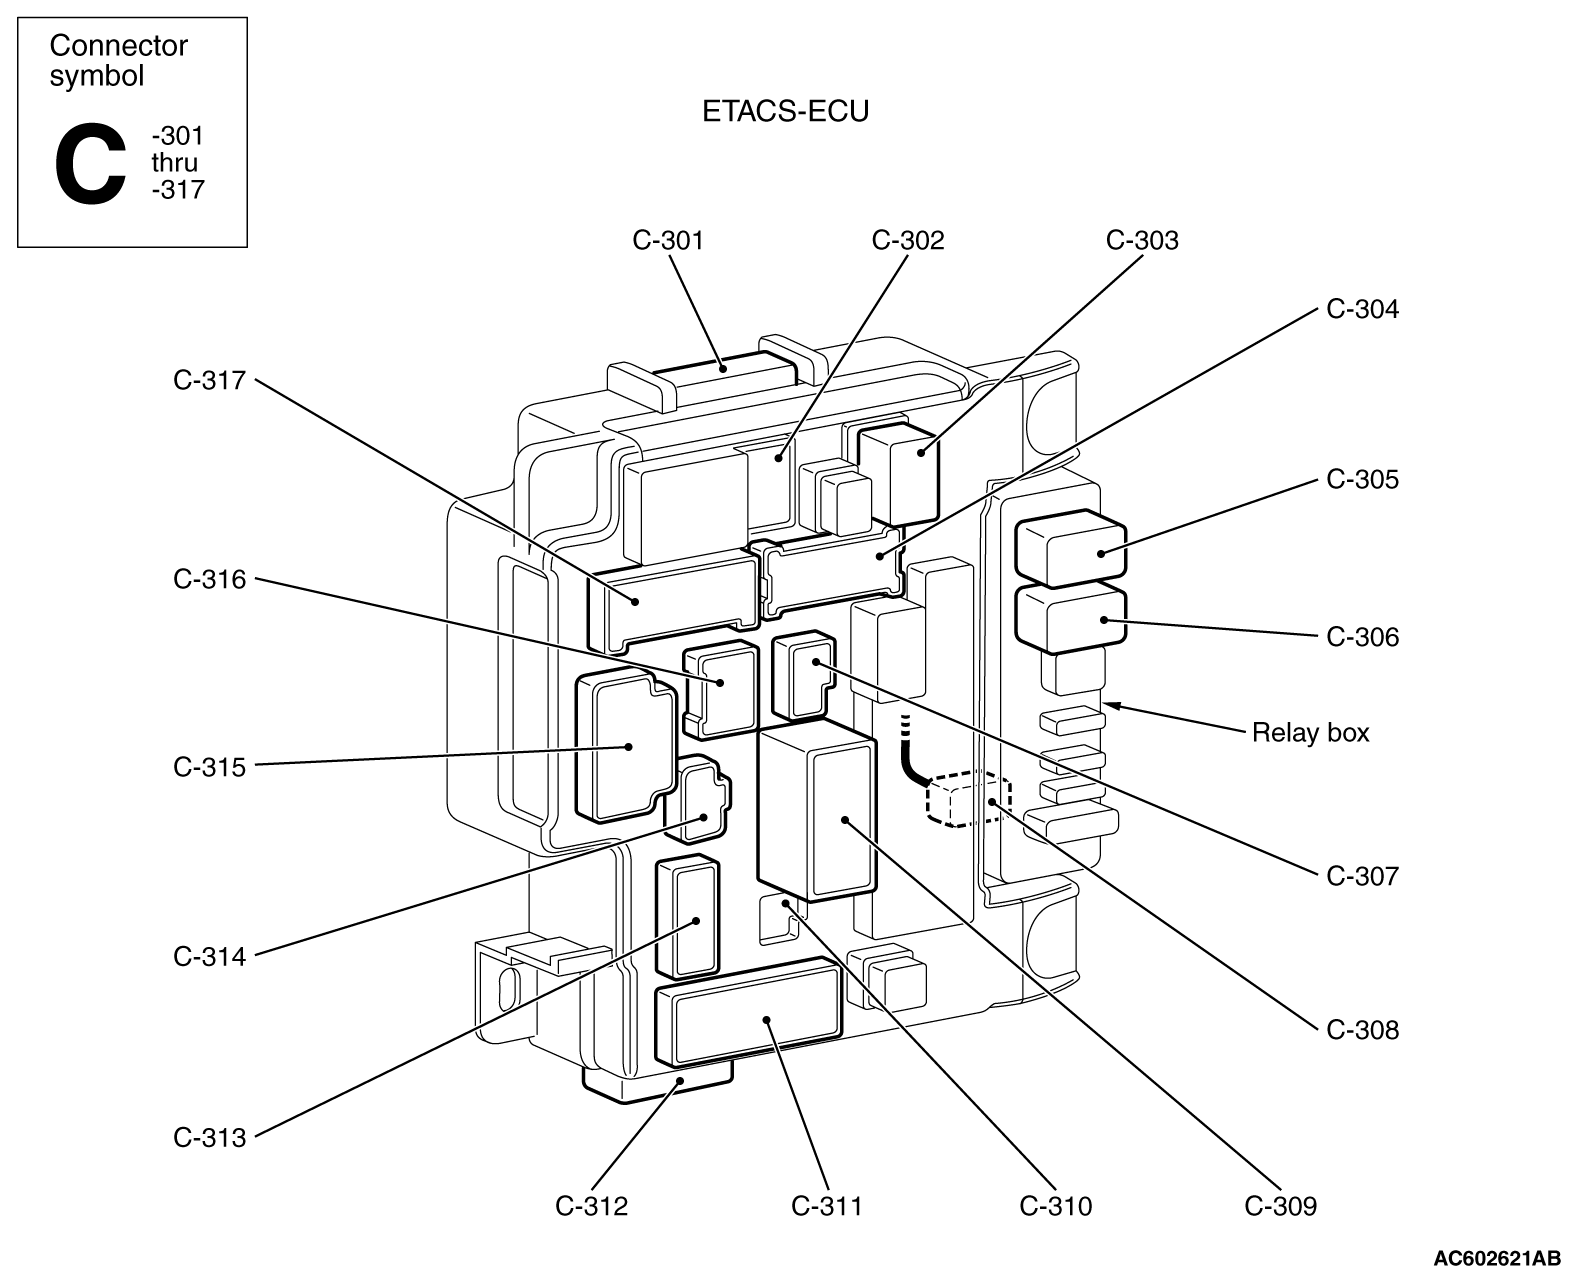 2013 Nissan Sentra Fuse Box Location 36 Wiring Diagram Images 2014 Versa Ac602621ab00eng 2010 Air Filter Cover Motor